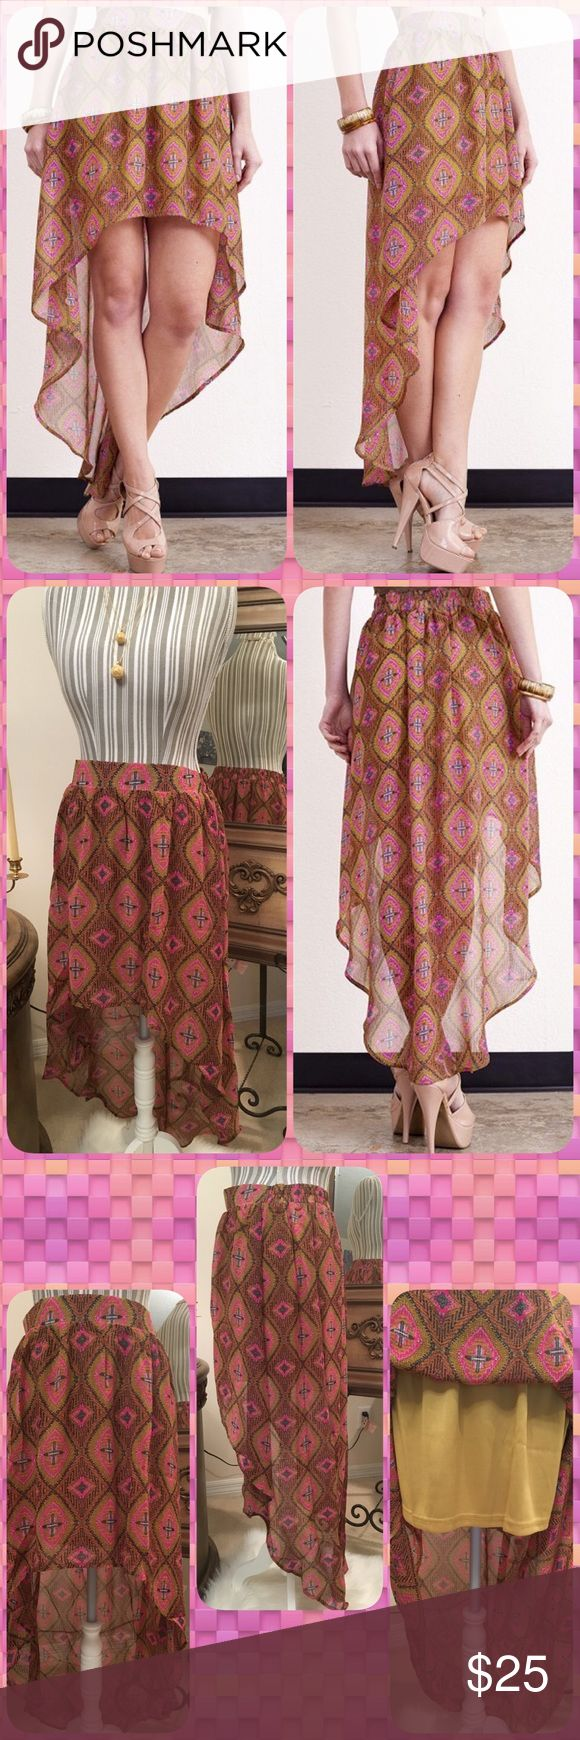 Hi-Lo Tribal Colored Skirt Gorgeous Tribal Colored Hi-Lo Skirt, beautiful and feminine! Lined with a gold colored skirt underneath and elastic waistband in the back only, very well made....55% Cotton 45% Poly...Sizes 2-4 (Small) 6-8 (Medium) 10-12 (Large) ✳️PRICE FIRM UNLESS BUNDLED✳️NO TRADES✳️ LDB Skirts High Low